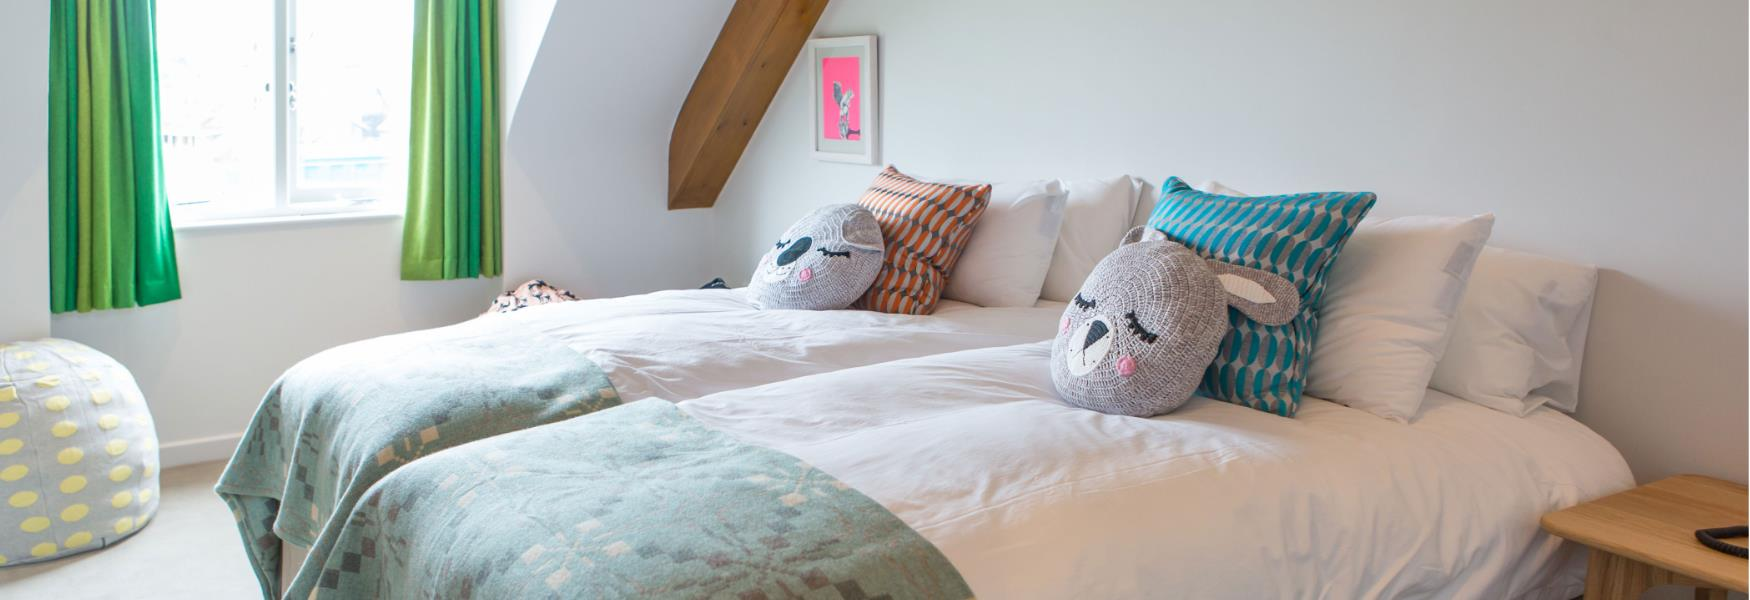 Bedroom Family Friendly Accommodation in the New Forest